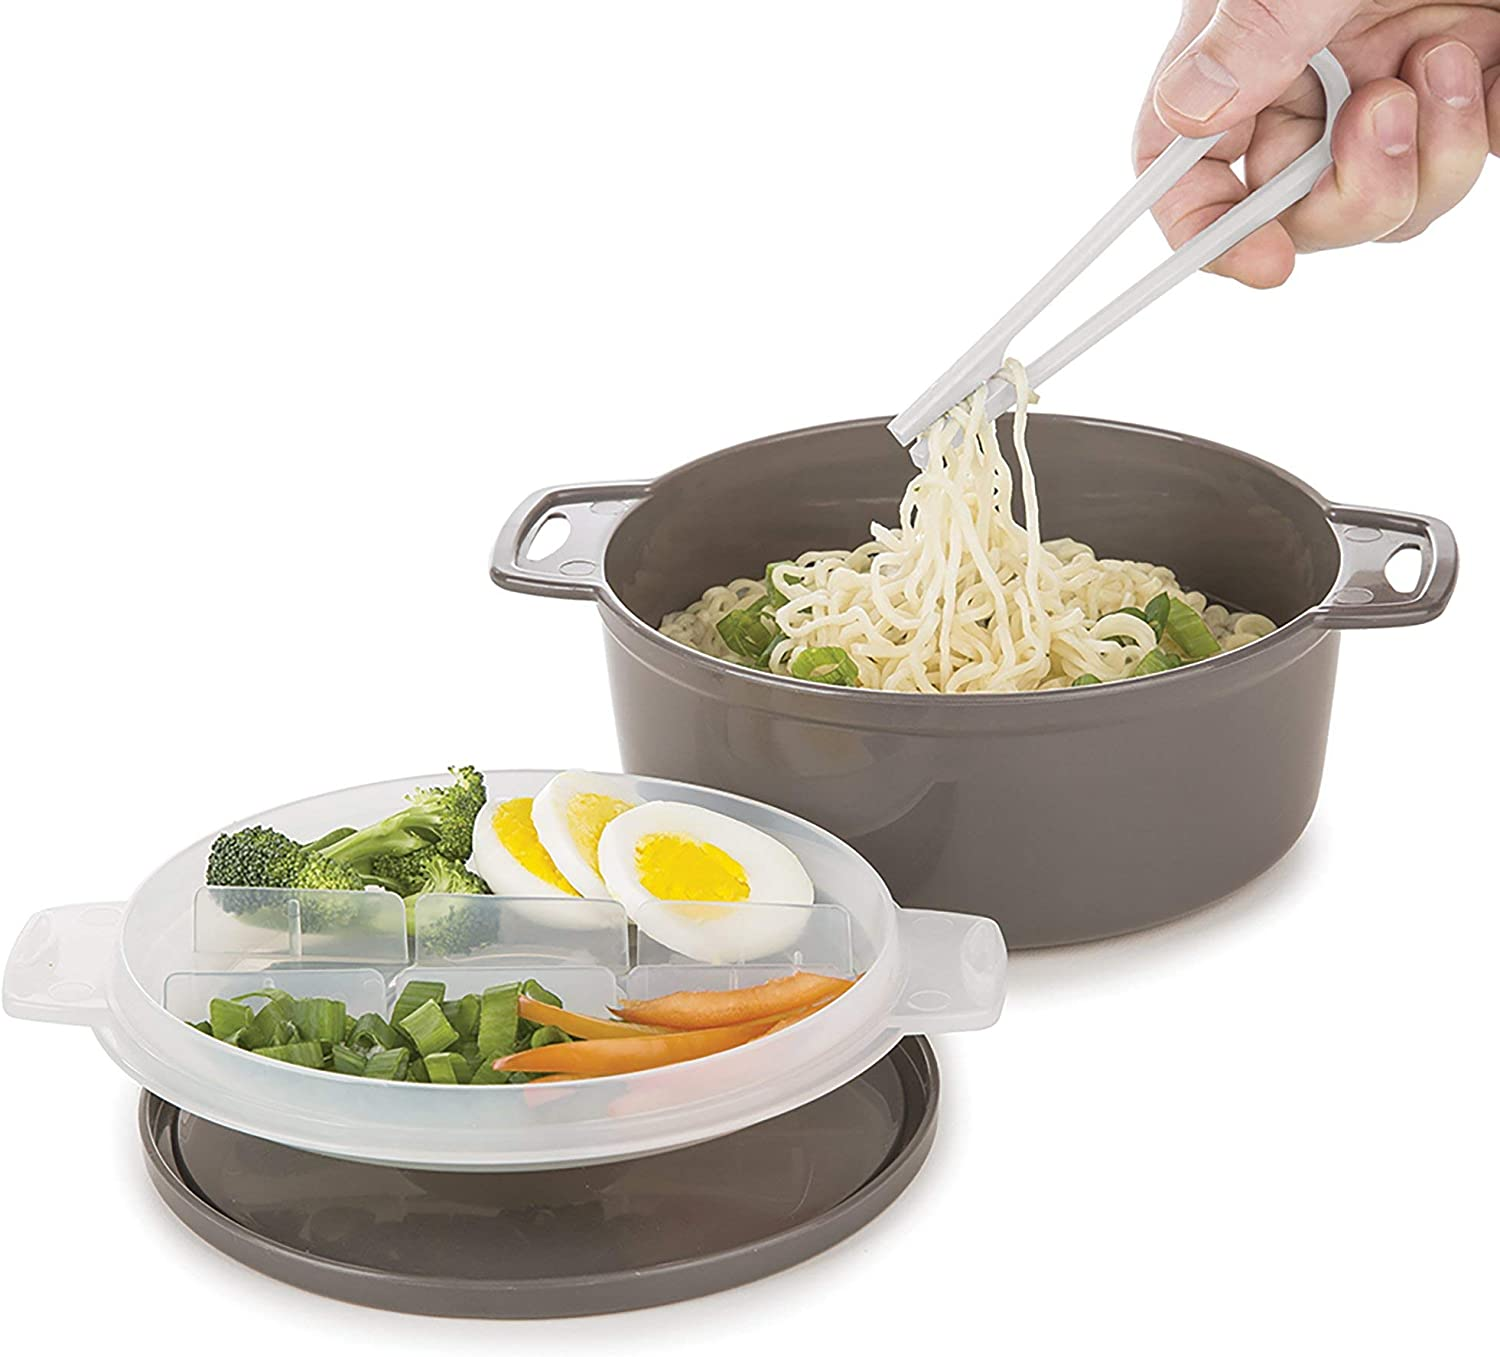 Prep Solutions by Progressive 4-Piece Microwave Ramen Bowl to-Go PS-94GY Soup Spoon Included Perfect for Ramen New Version Gray Pho Noodles Dishwasher Safe BPA Free Udon